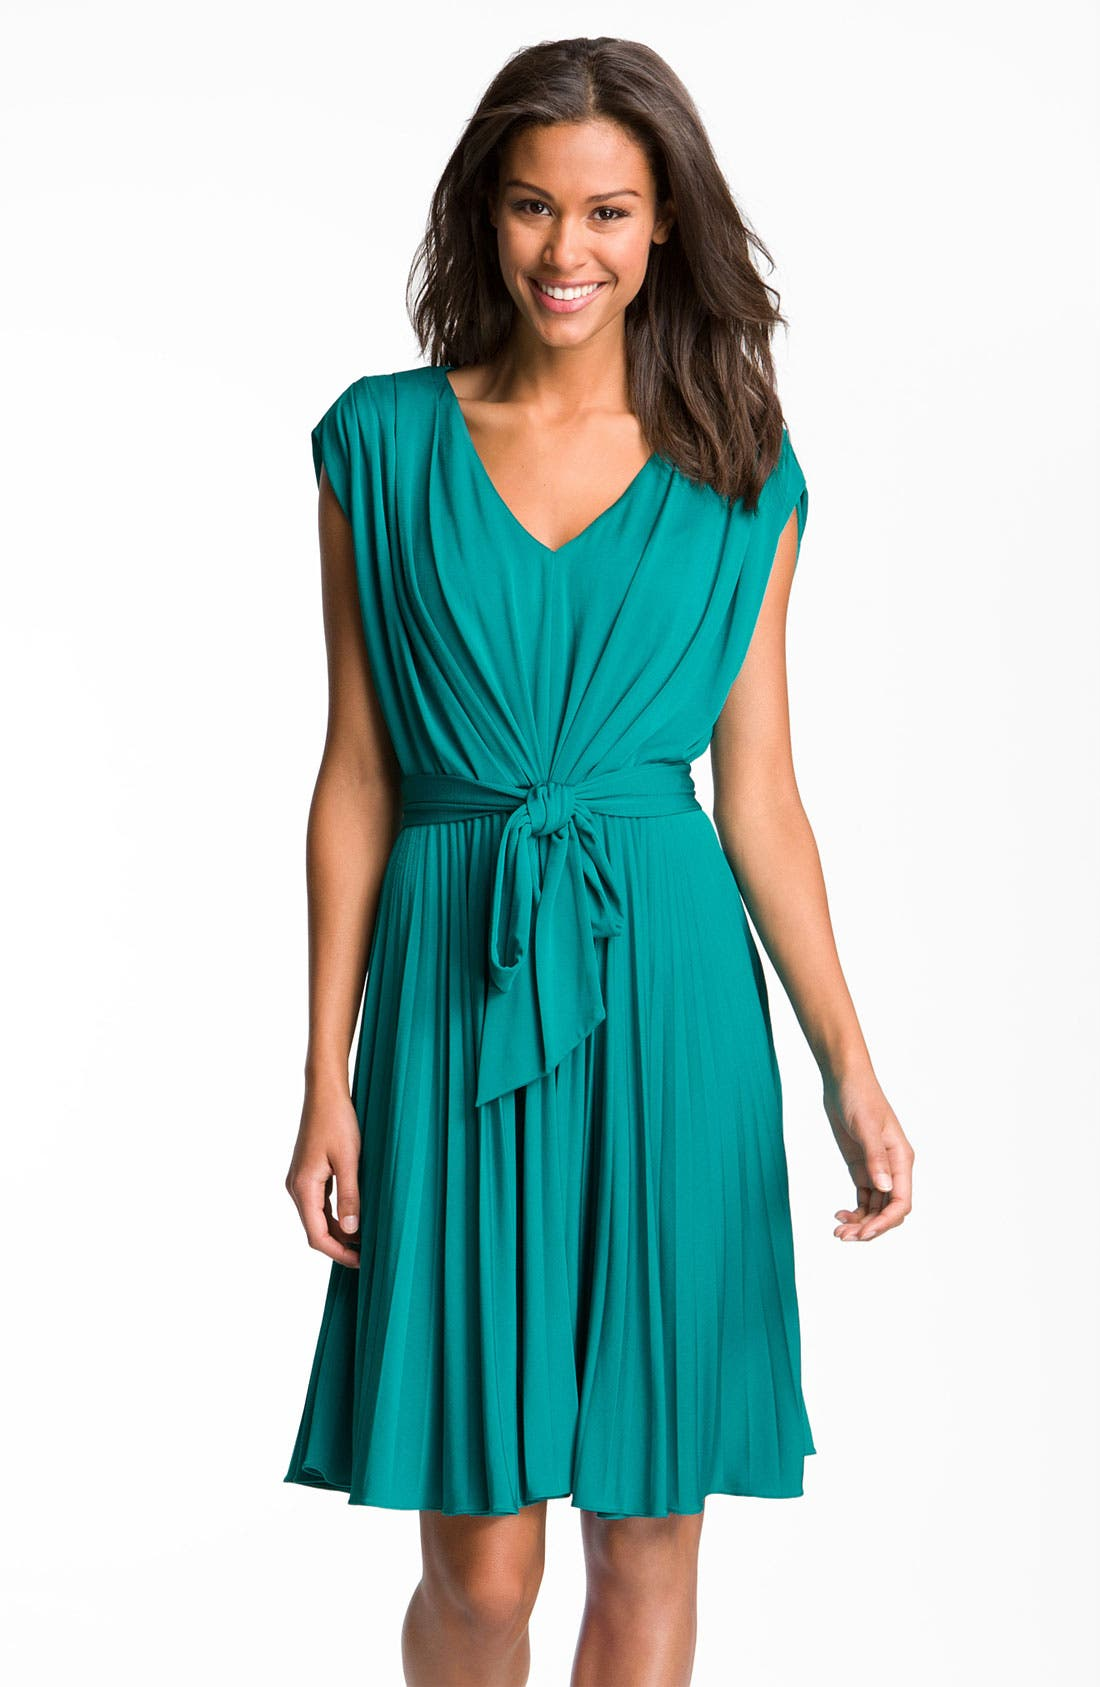 Alternate Image 1 Selected - Suzi Chin for Maggy Boutique Pleated V-Neck Jersey Dress